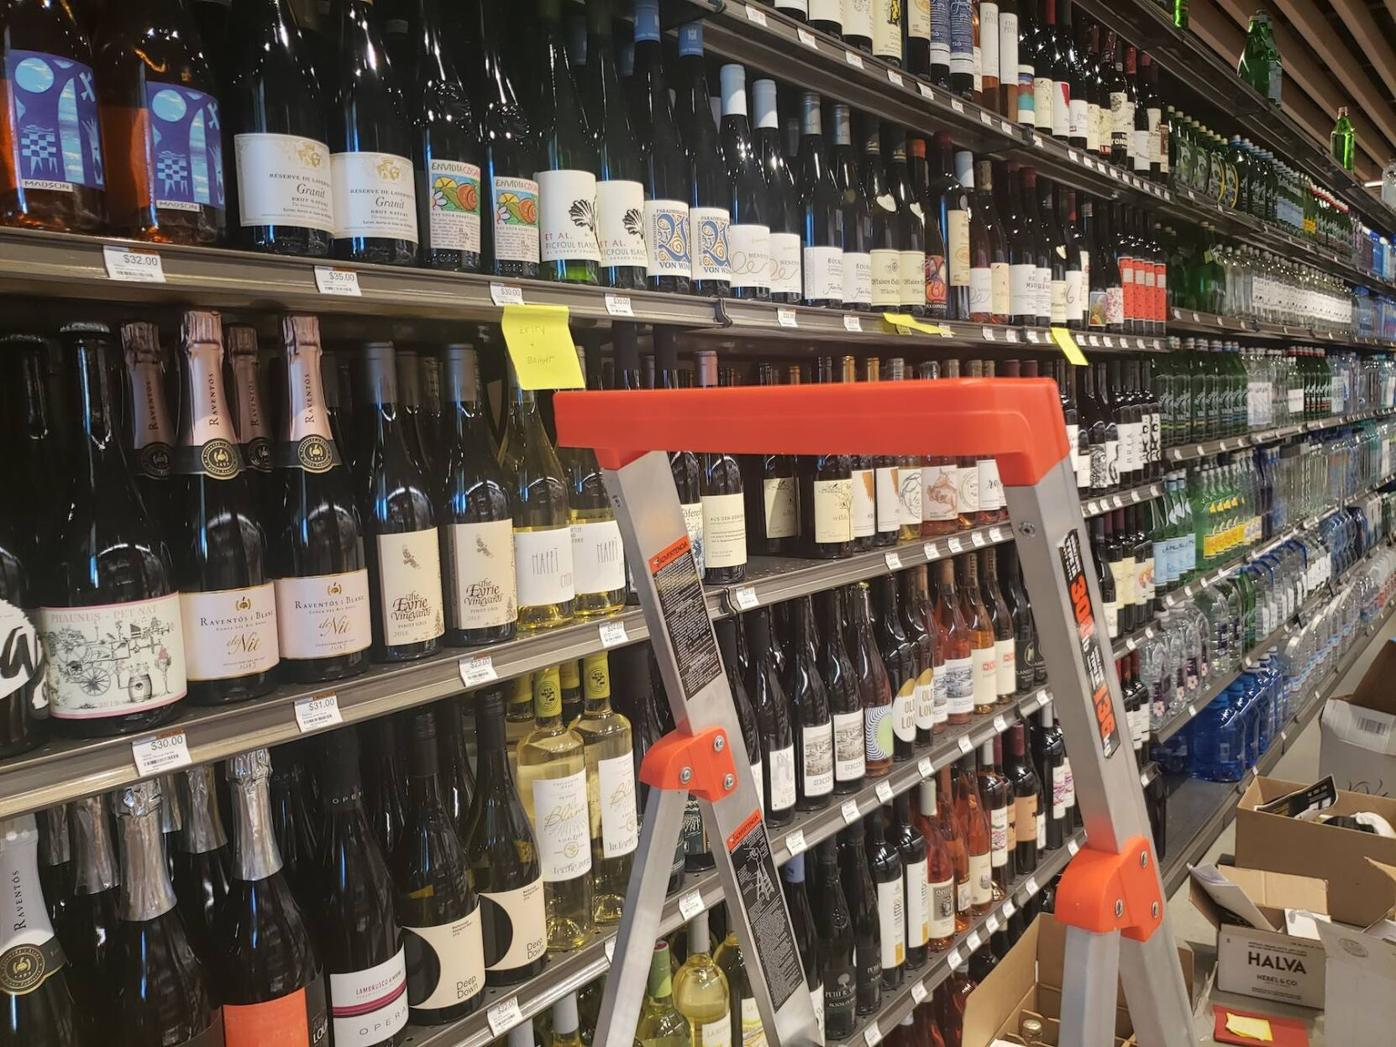 Erewhon's wine section